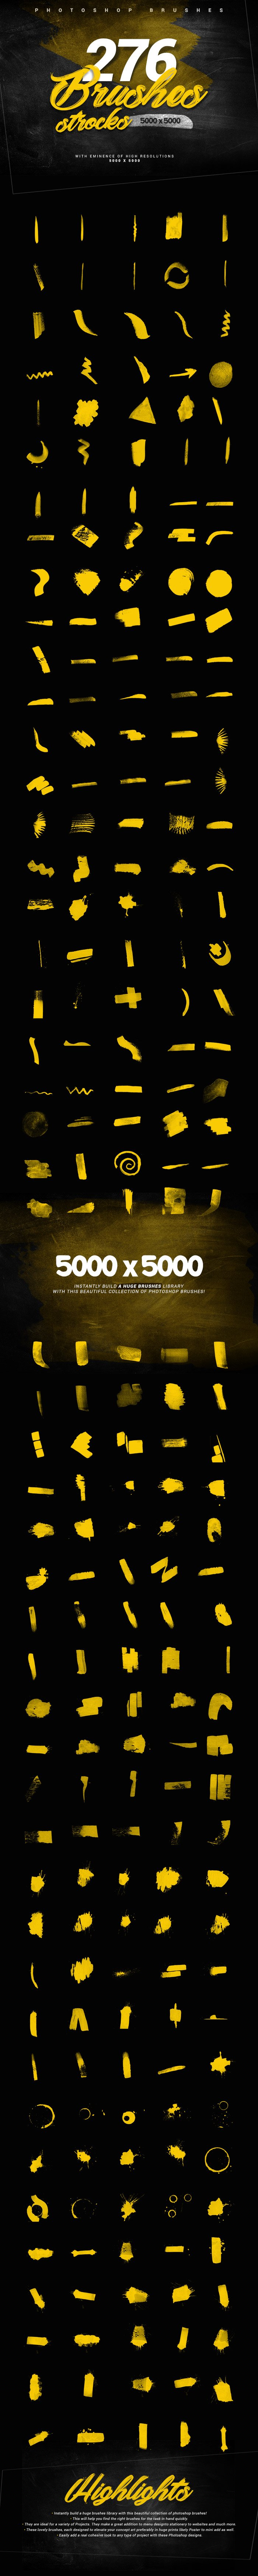 463 photoshop brushes collection 1